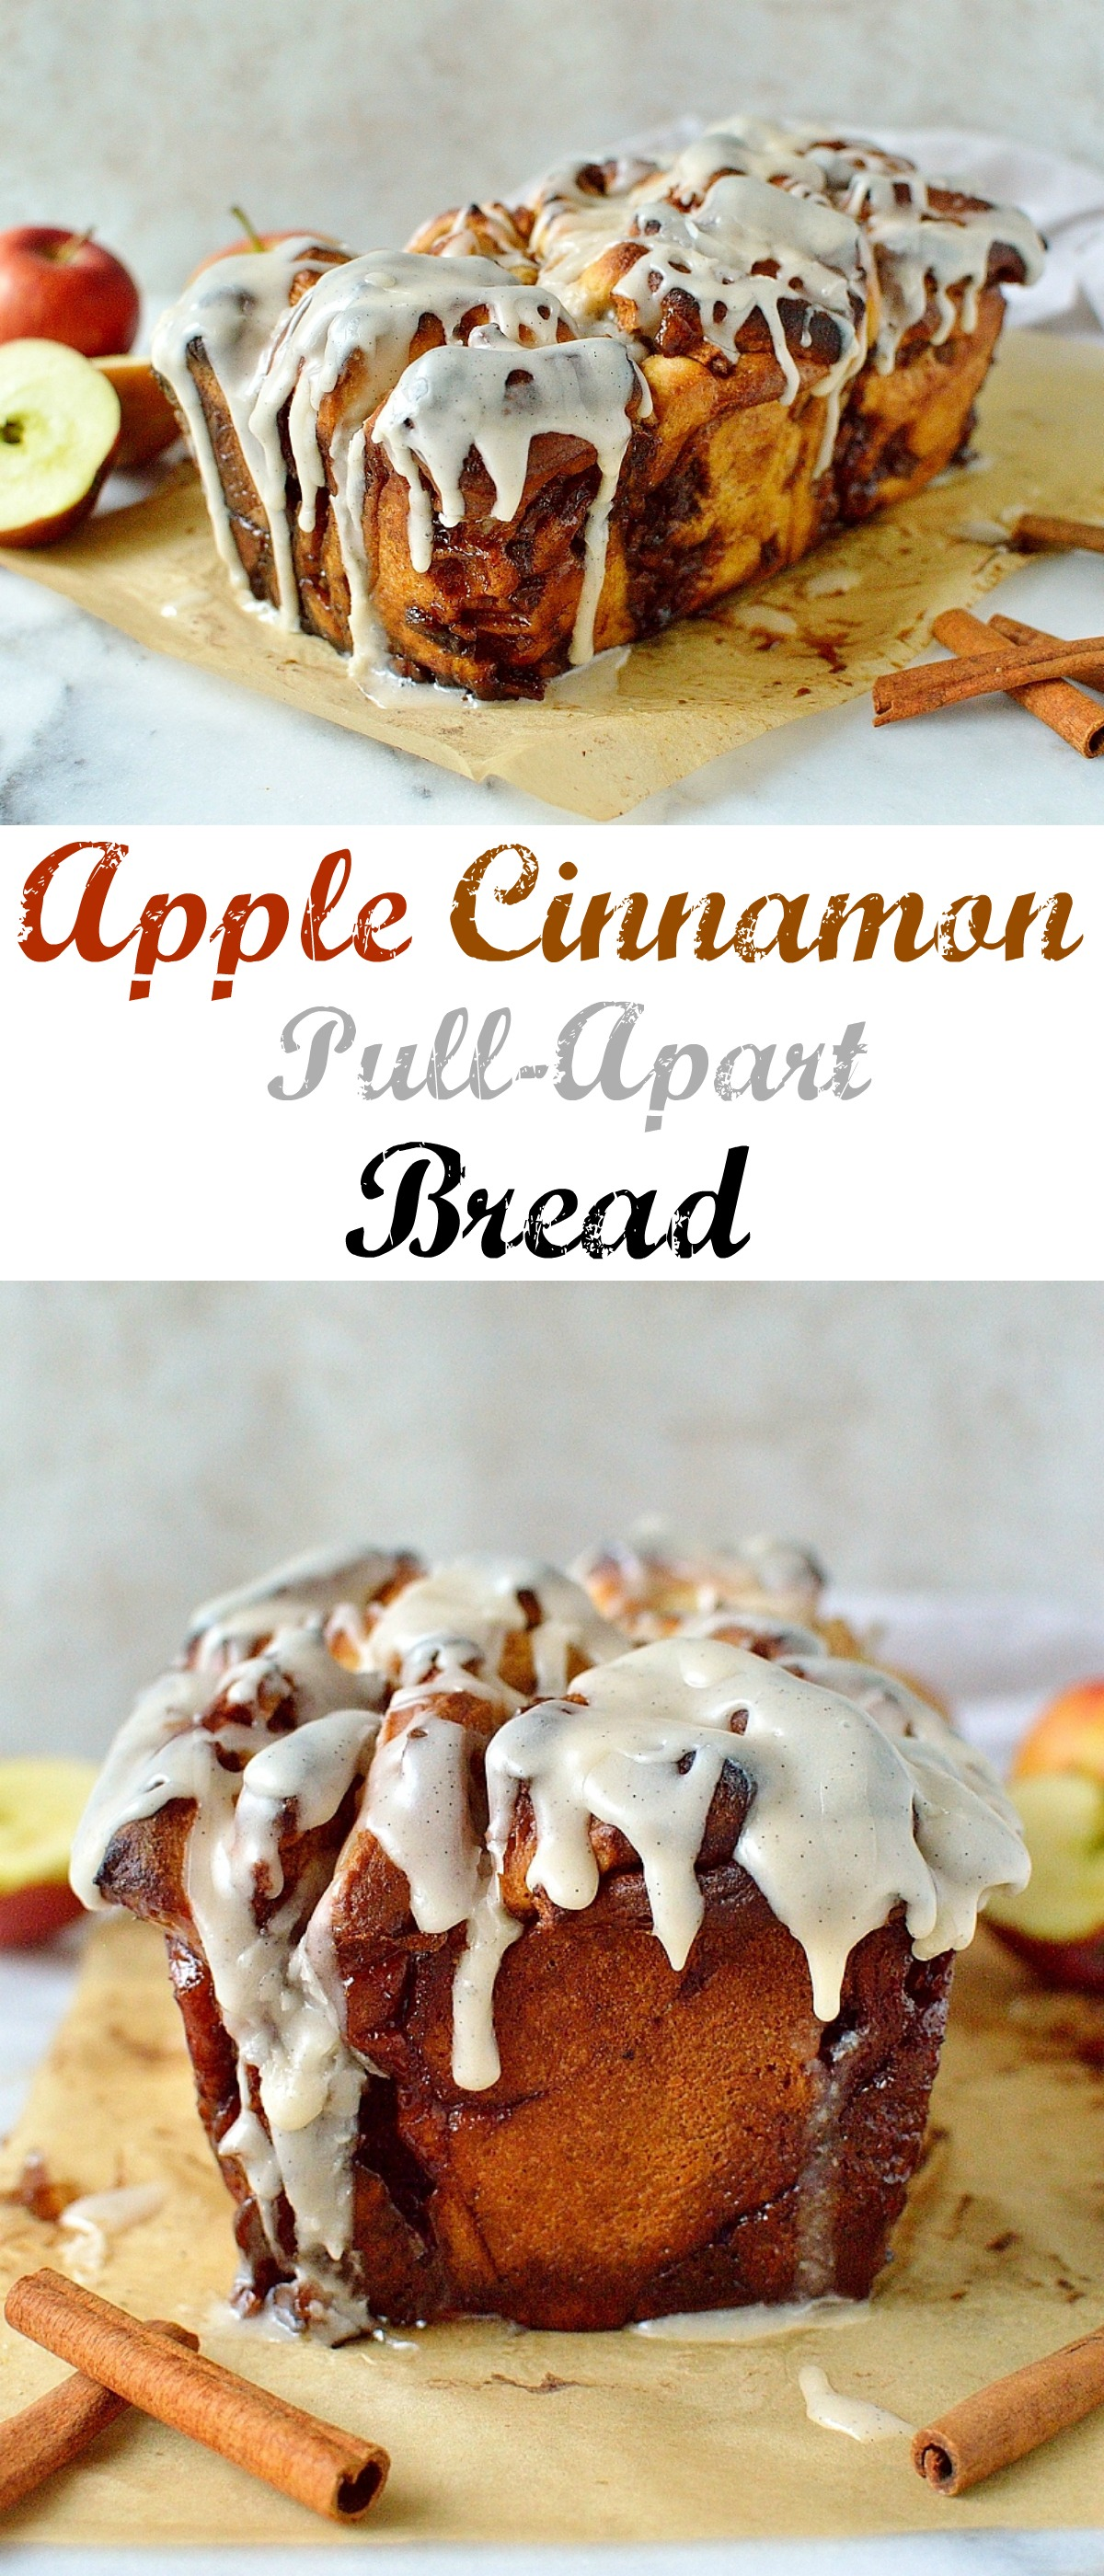 Apple cinnamon pull apart bread pinterest